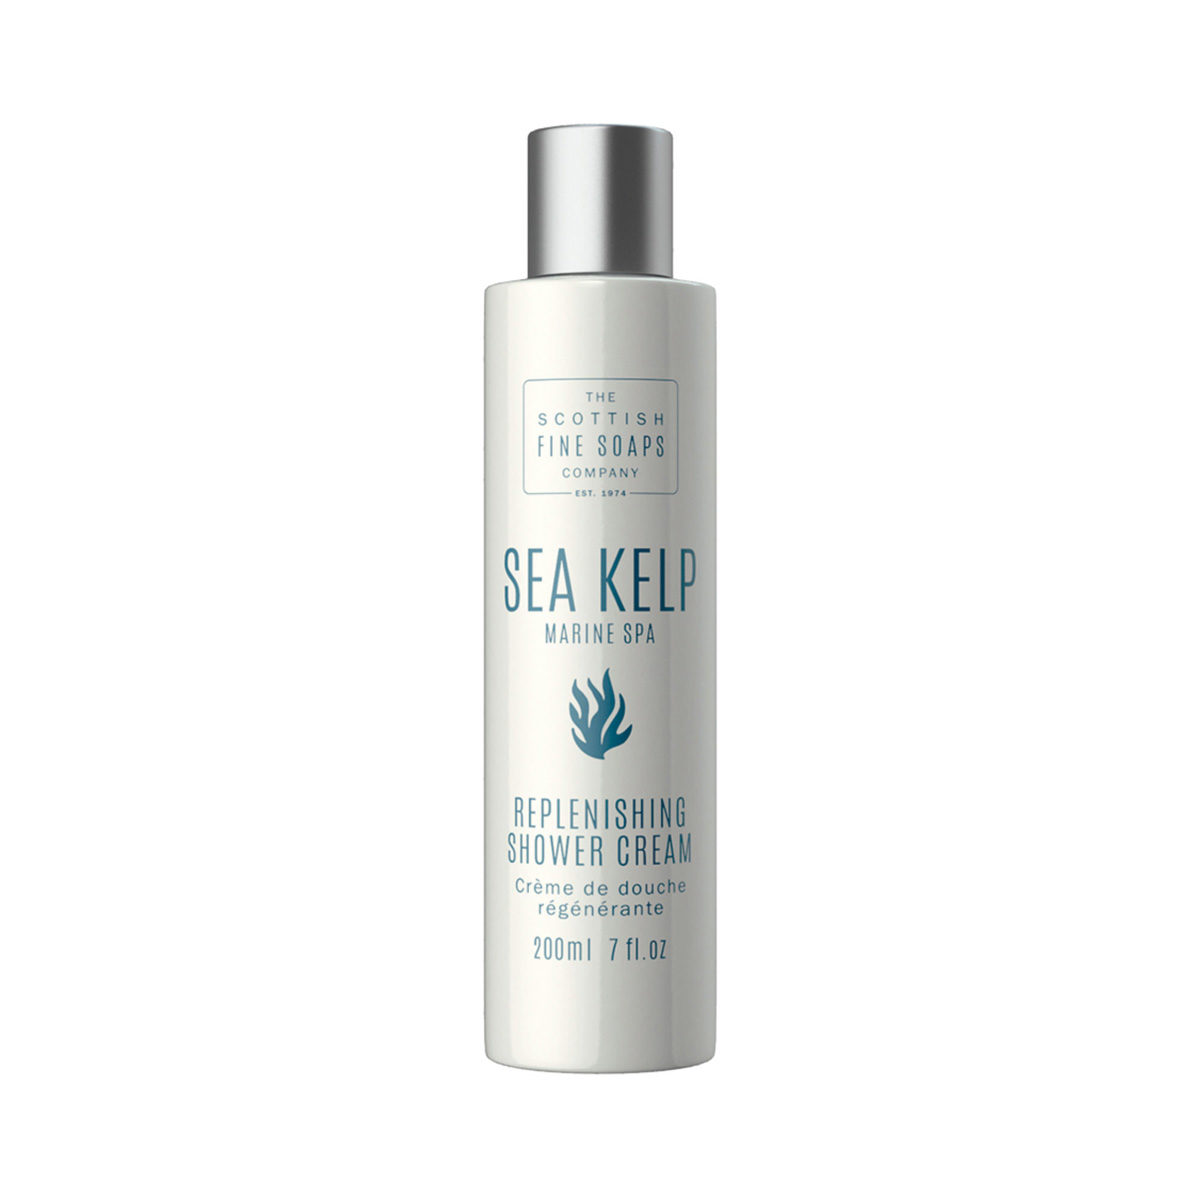 Sea Kelp Marine Spa Replenishing Shower Cream